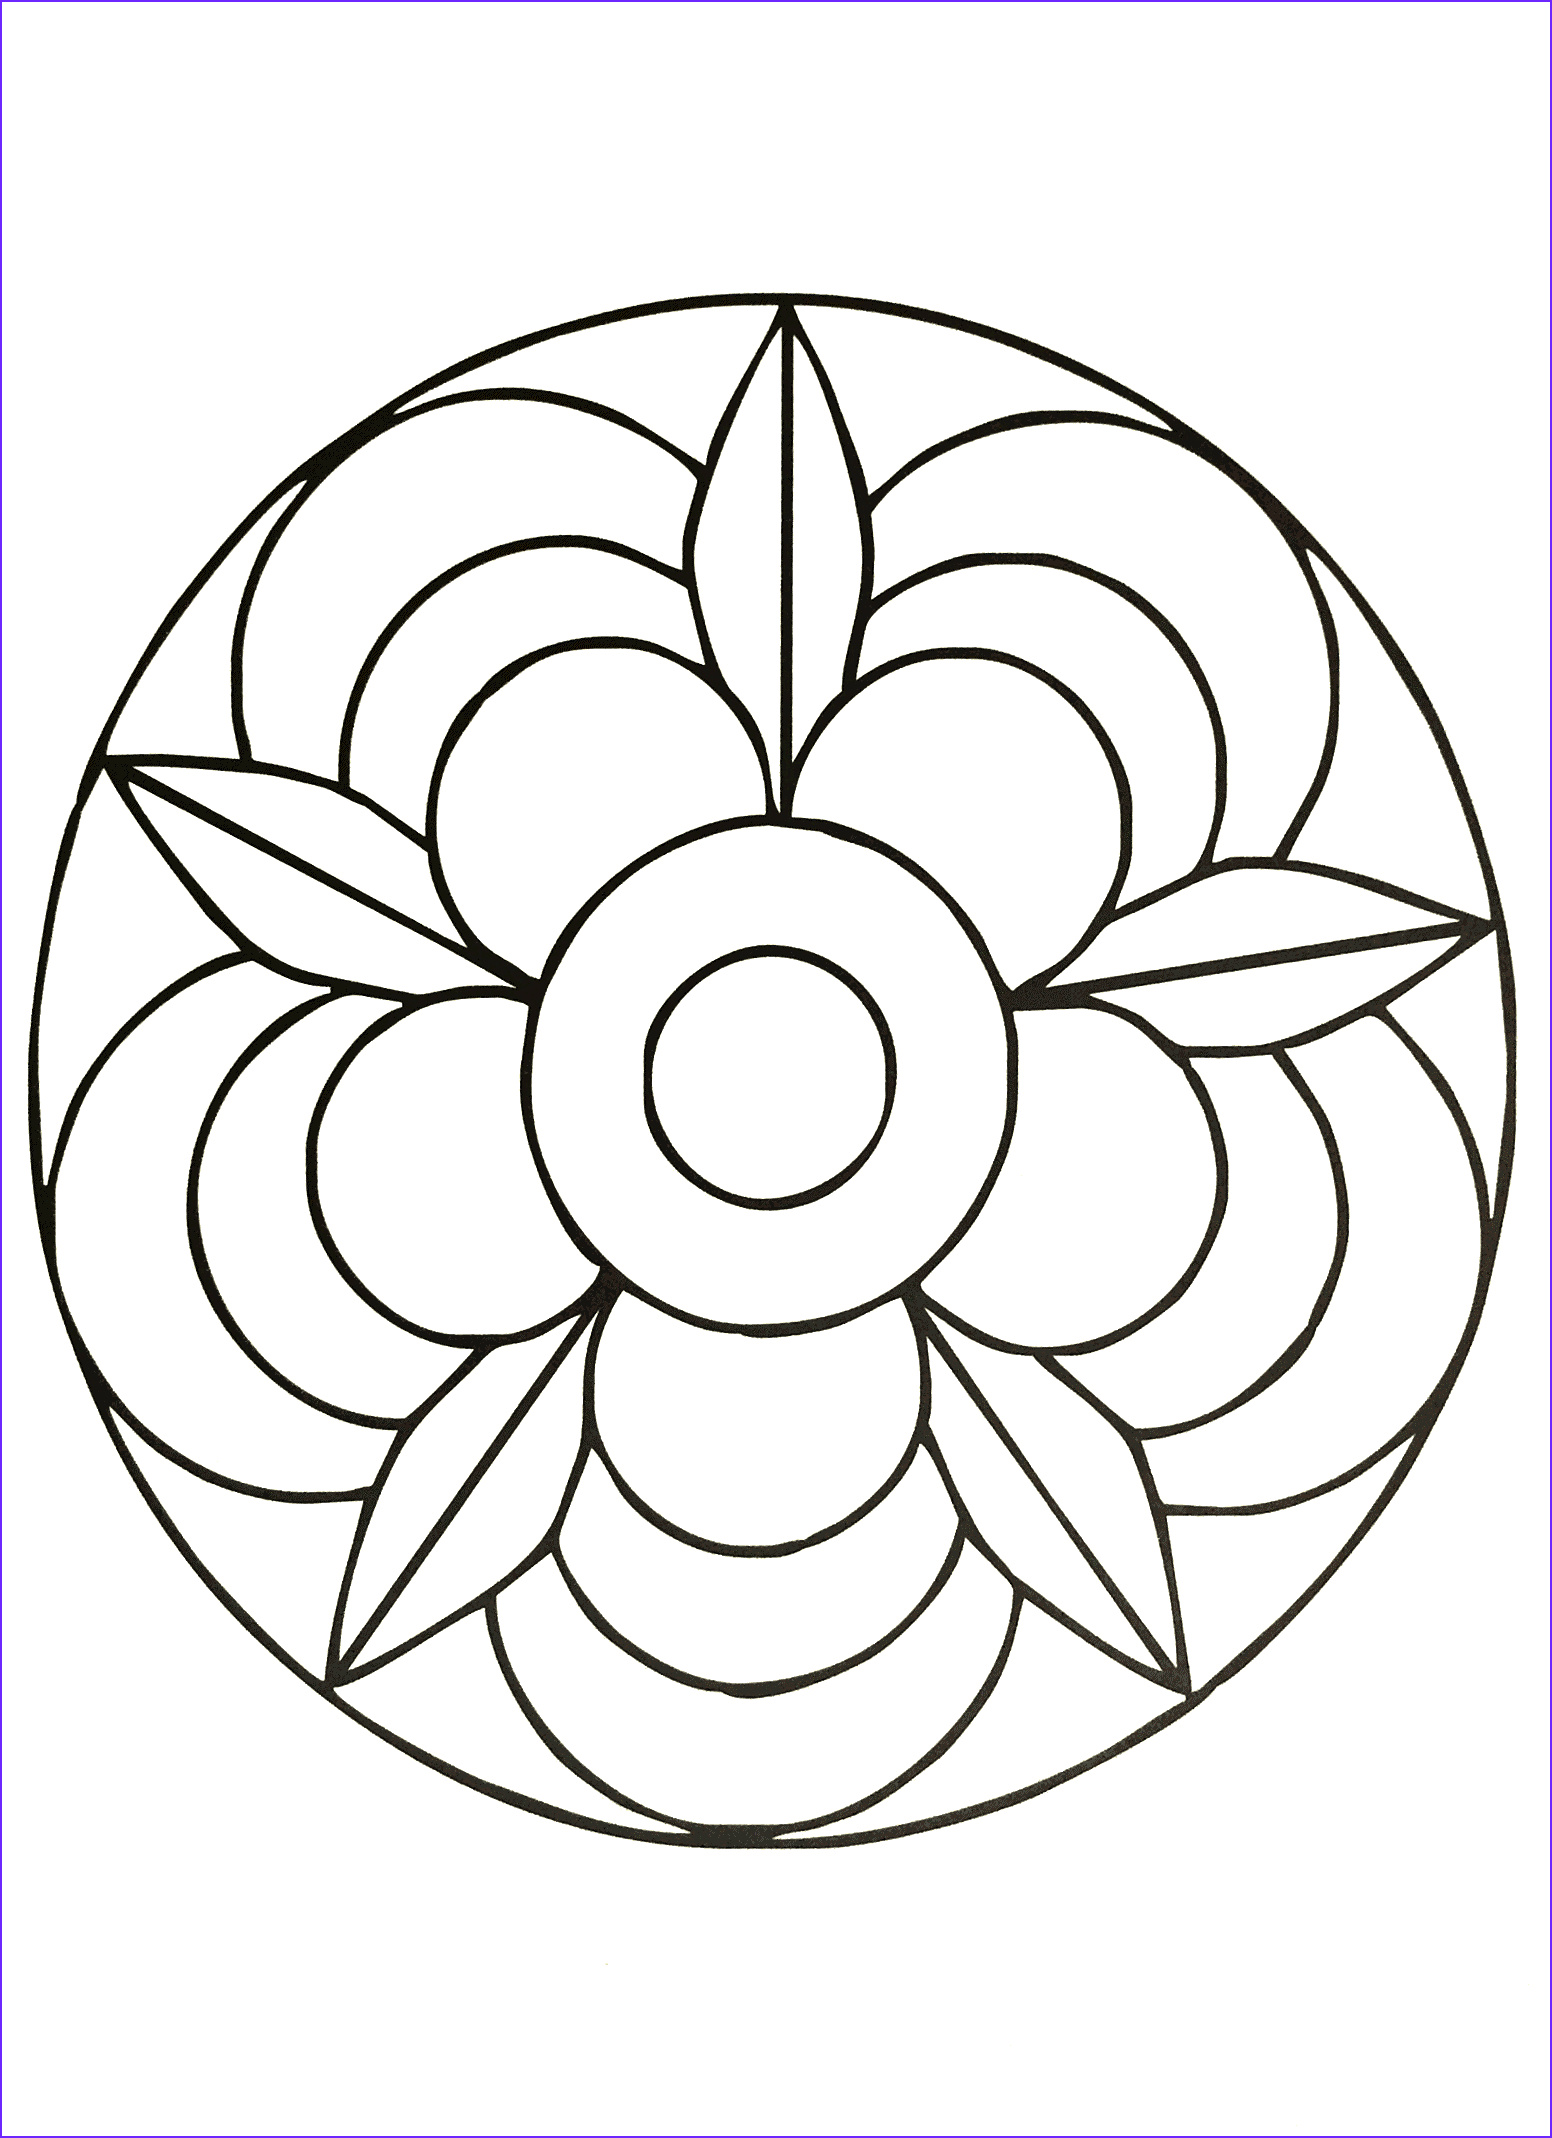 Simple Mandala Coloring Pages Best Of Stock Simple Mandala 40 M&alas Coloring Pages for Kids to